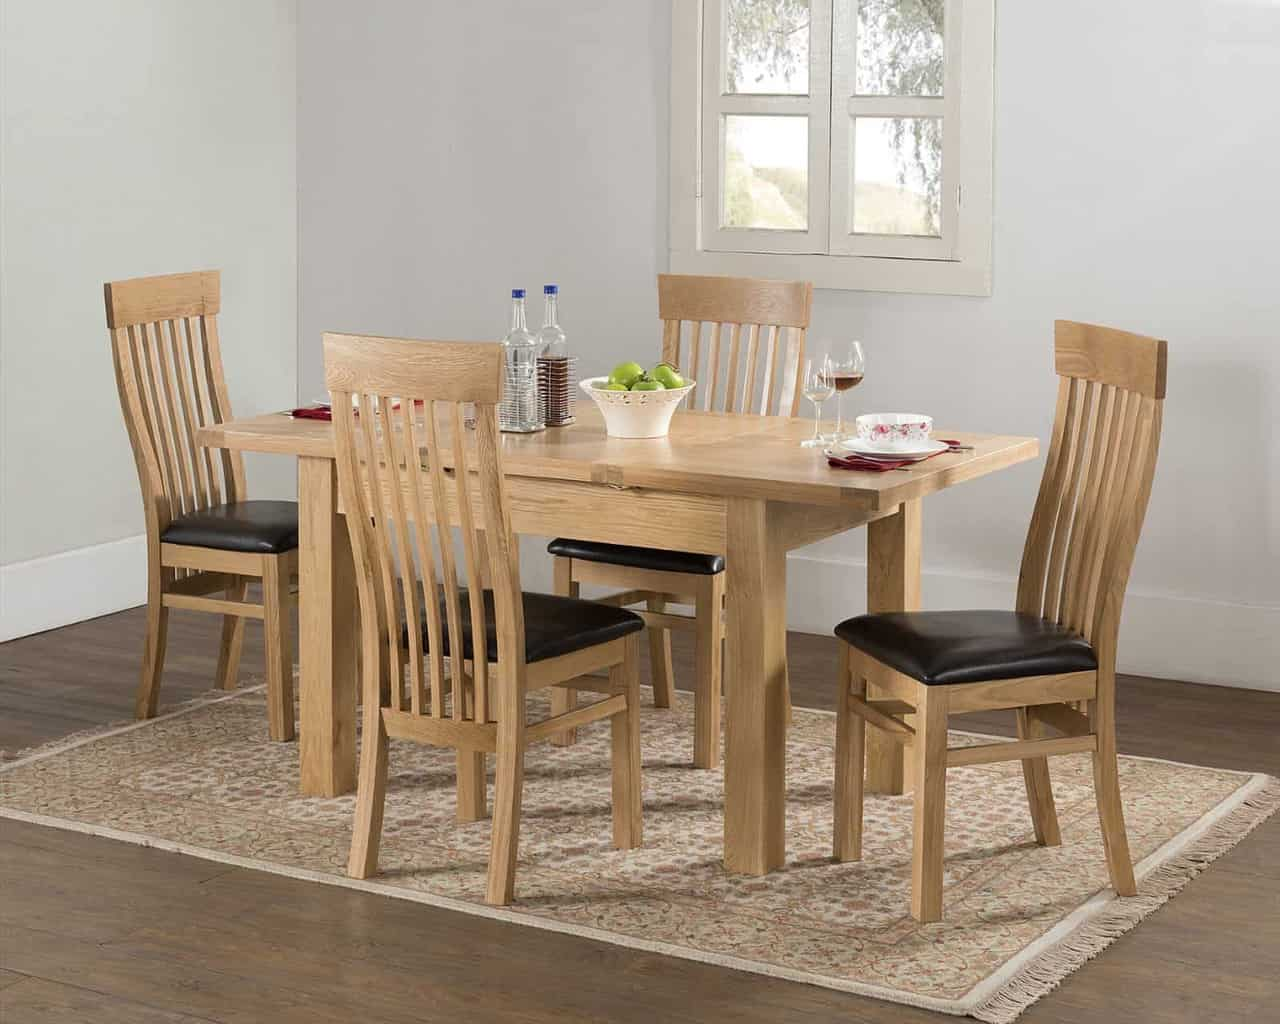 Valencia Solid Chunky Oak Narrow Butterfly Extending Dining Table With 4 Chairs Msl Furniture